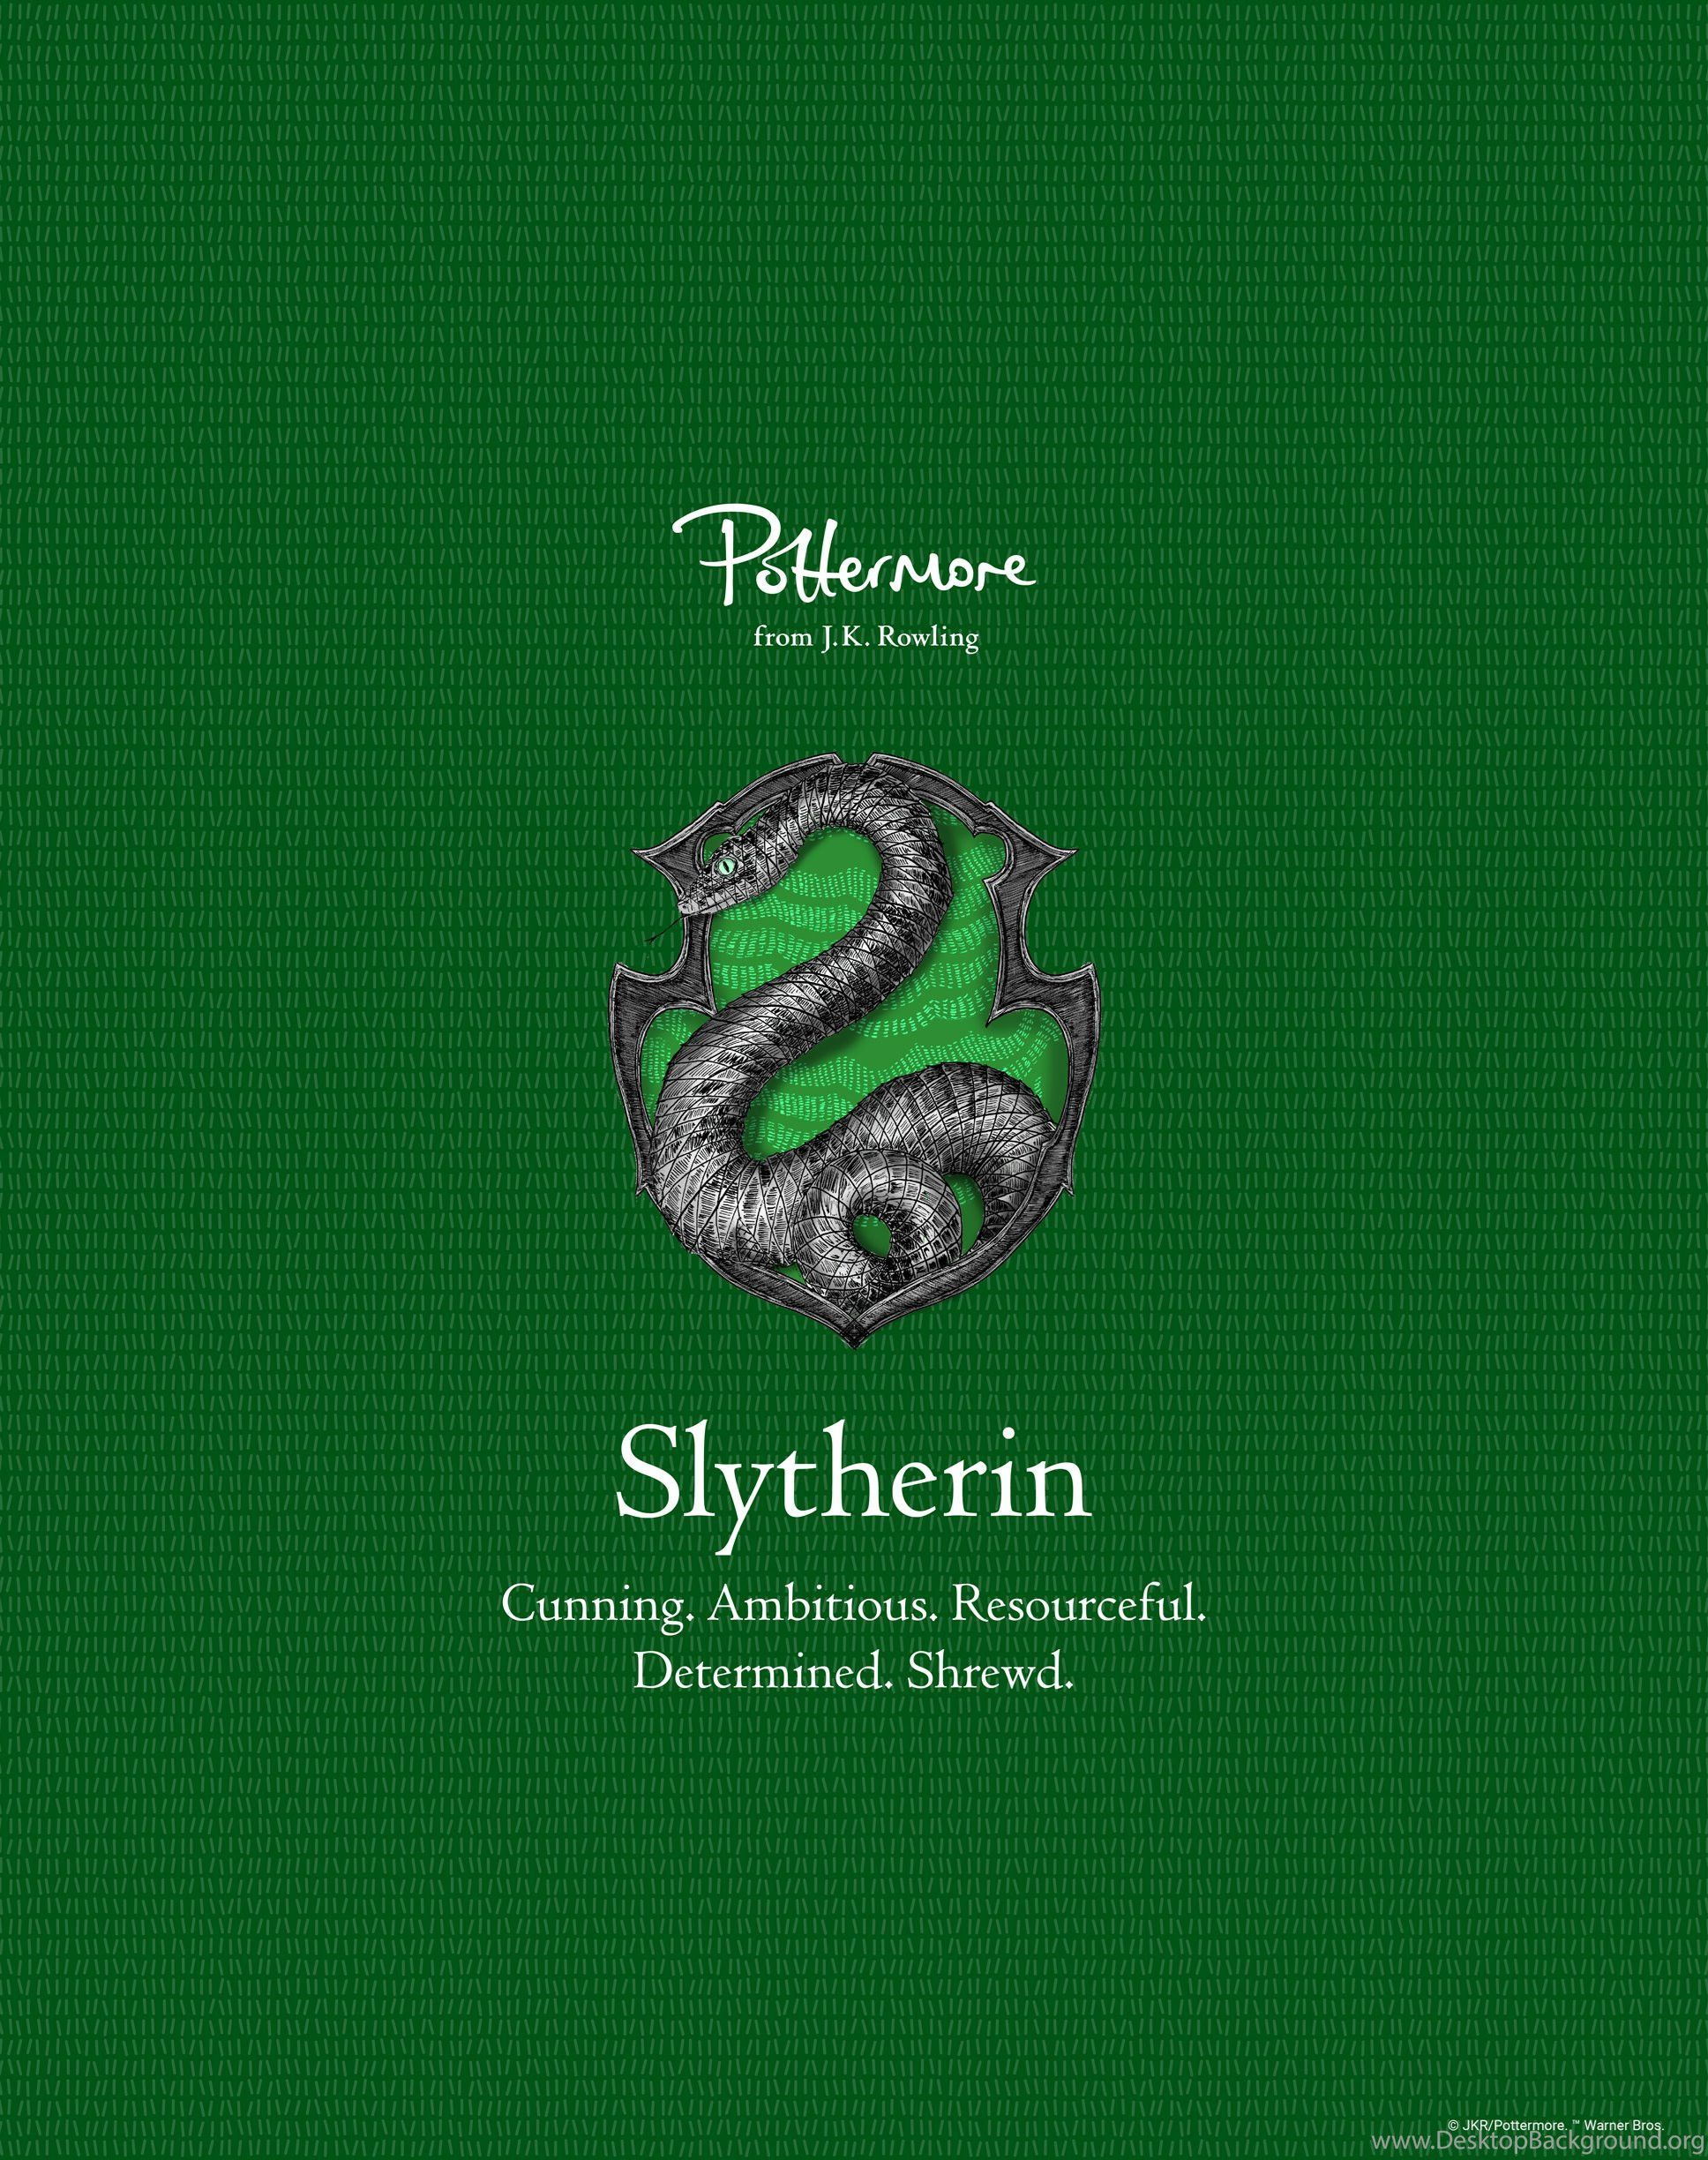 Slytherin Aesthetic Desktop Wallpapers On Wallpaperdog